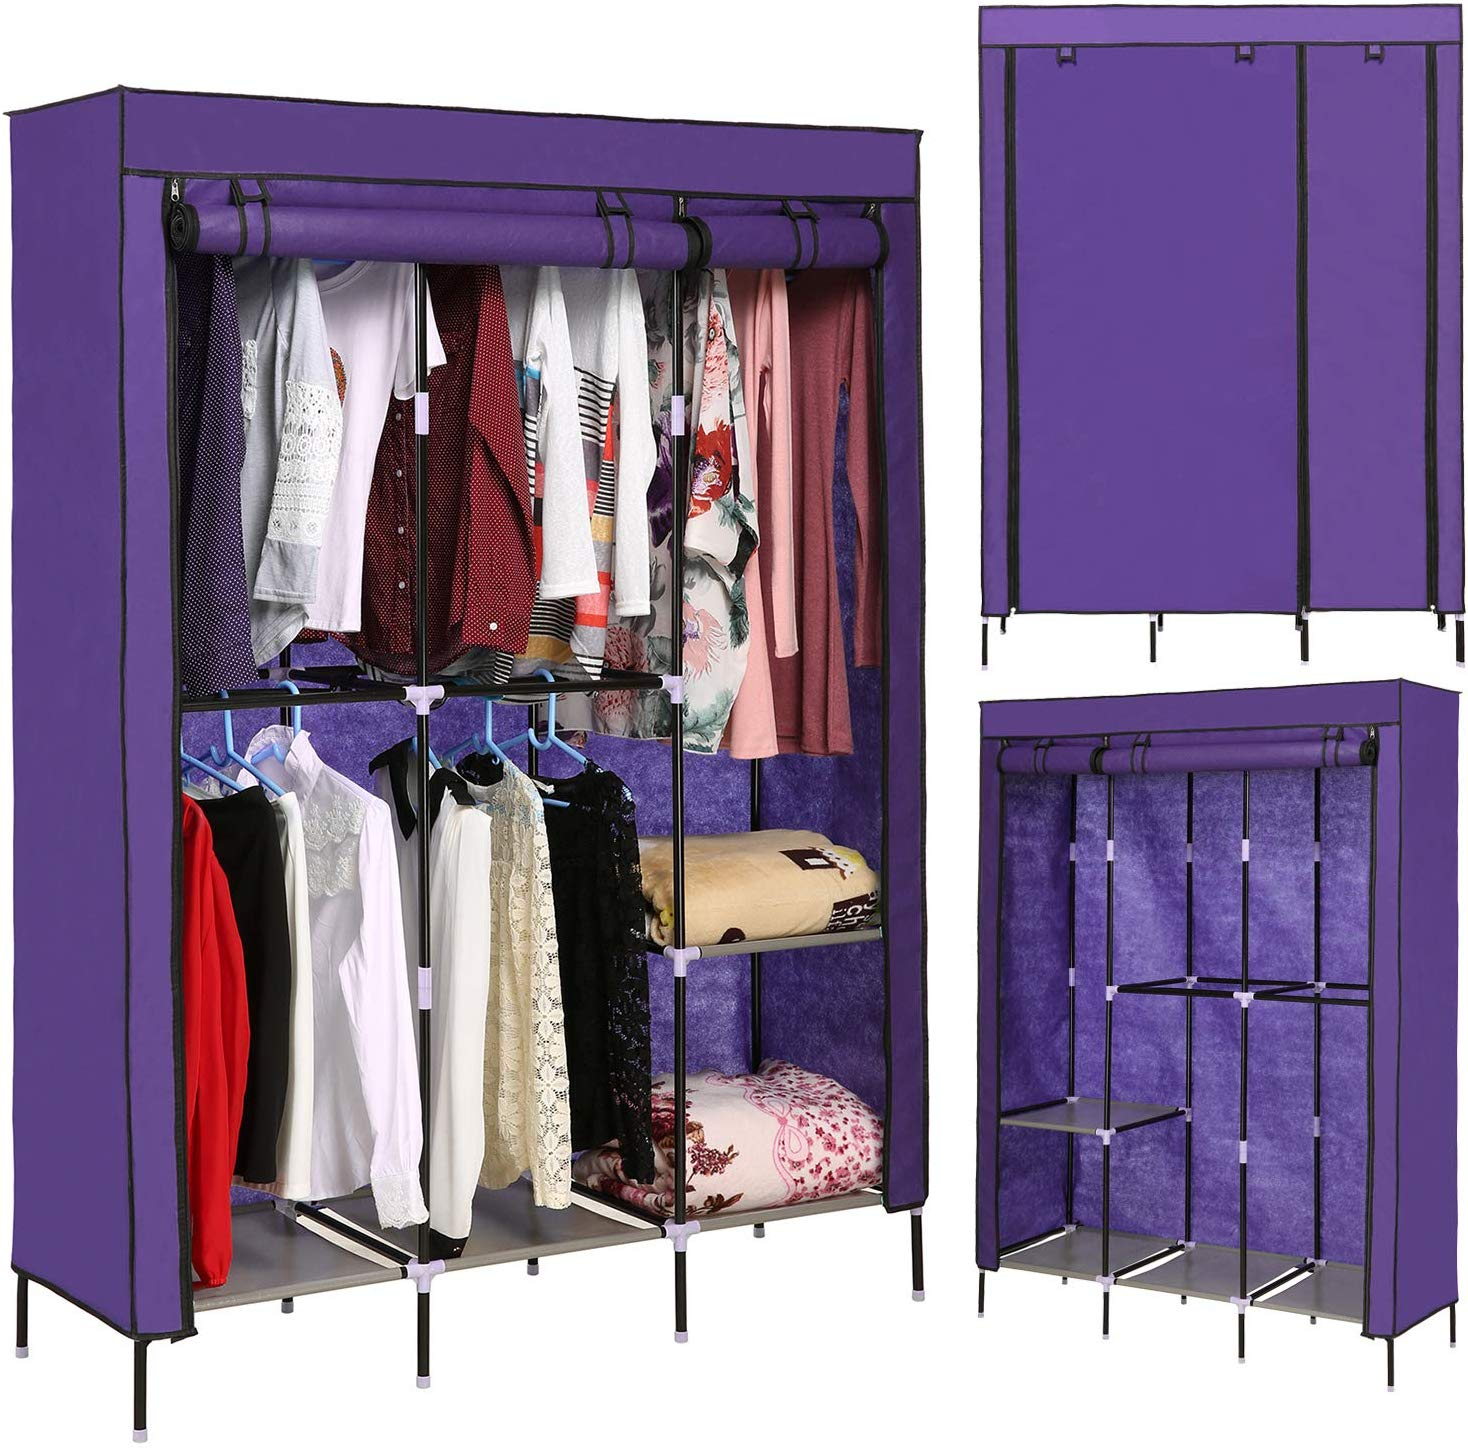 emdaot Portable Clothes Closet Organizer Wardrobe with Double Rod Shelves Freestanding Storage Wardrobe